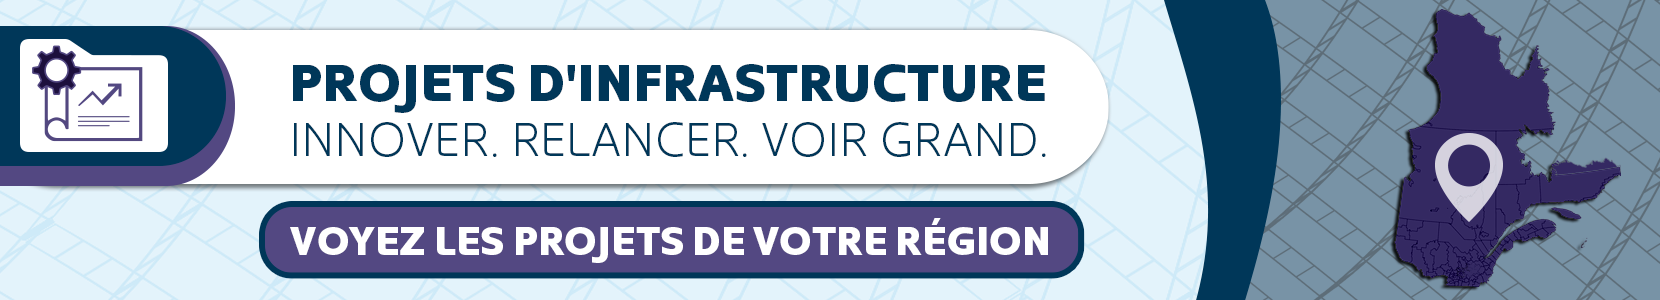 Projets d'infrastructure